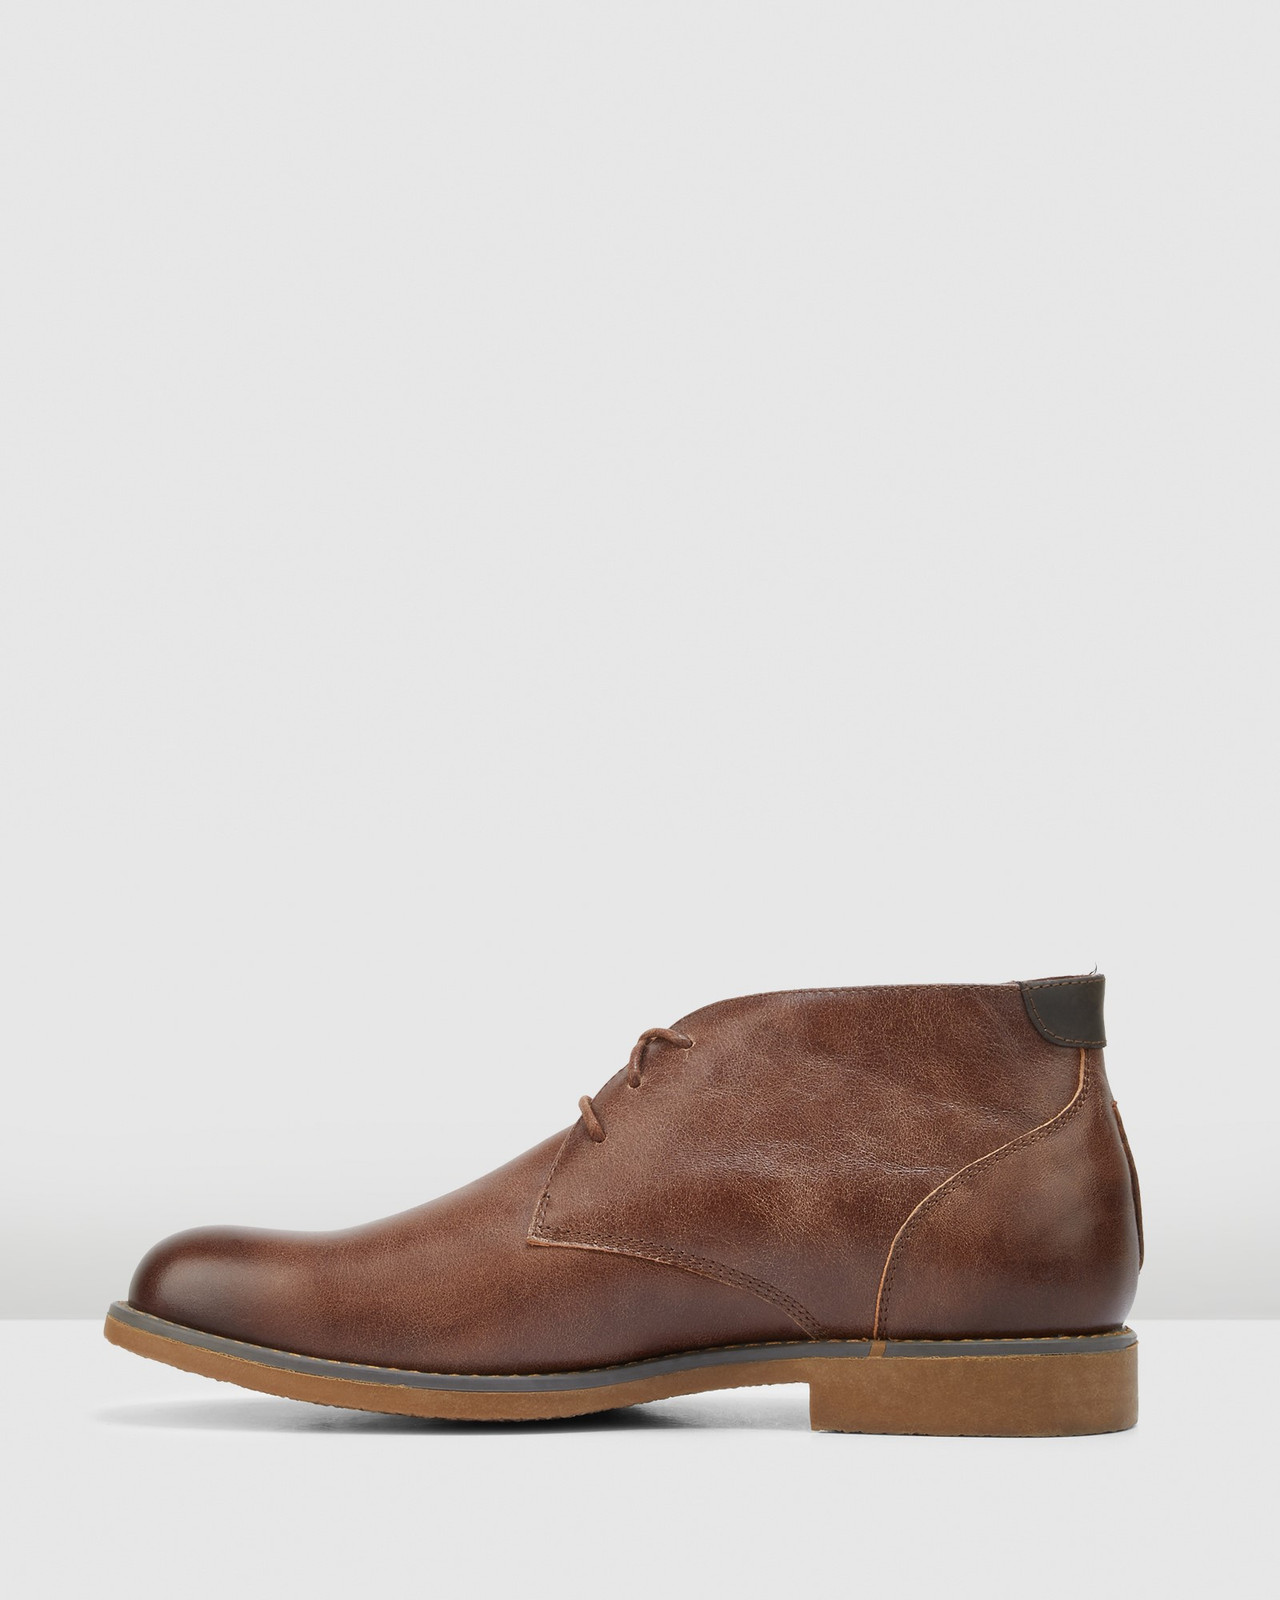 Hush Puppies  Brown Burnish Leather  TERMINAL